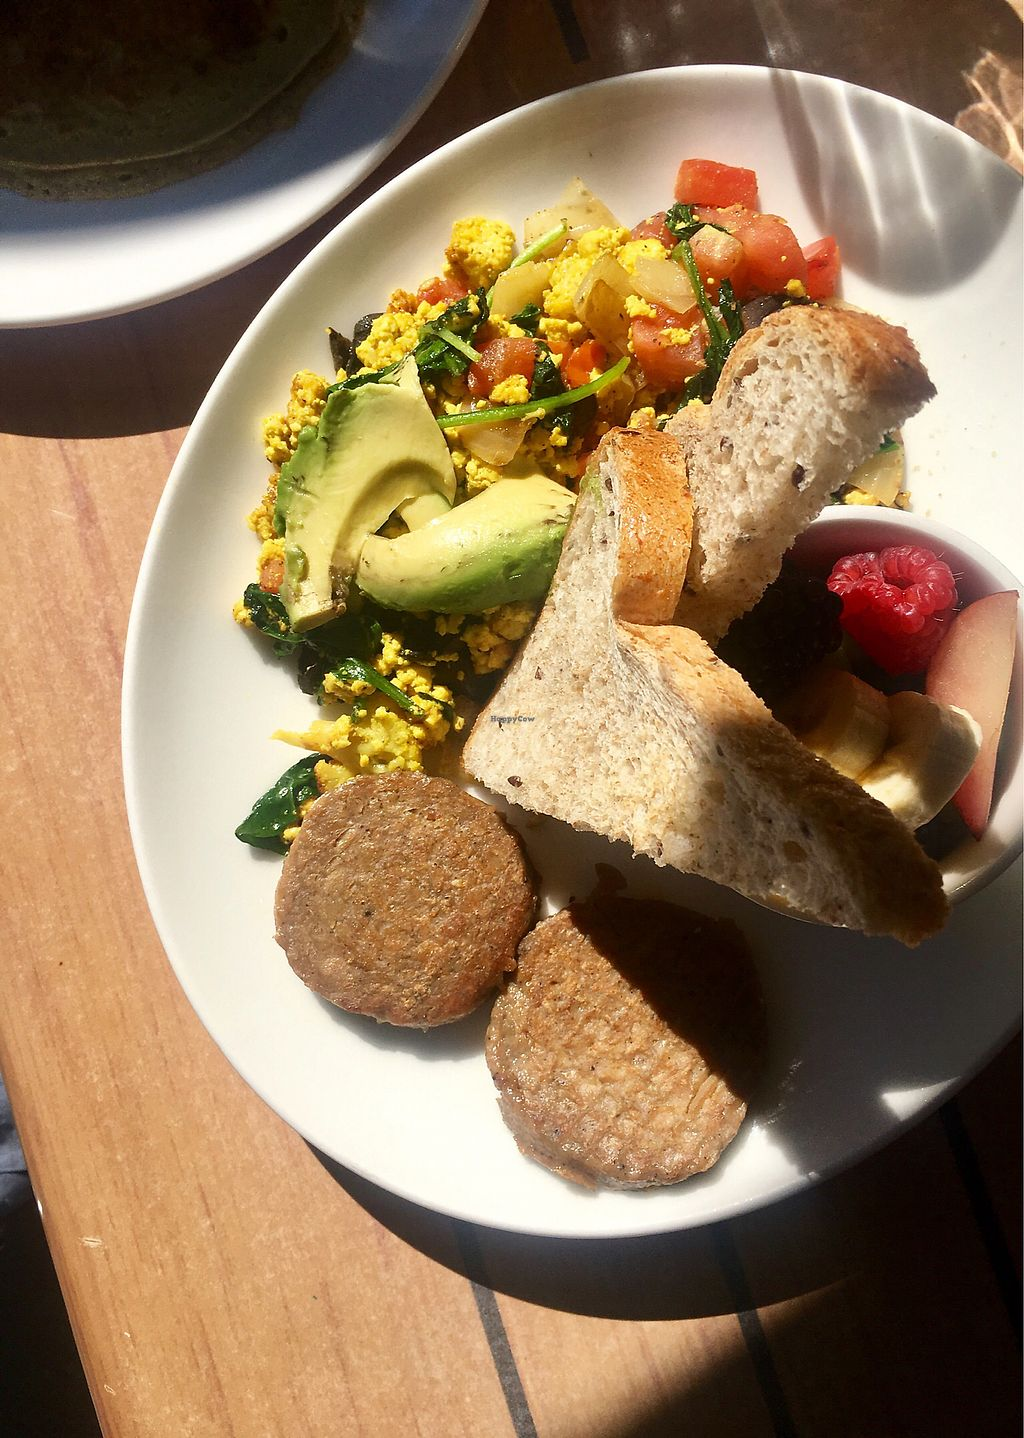 """Photo of Sleepy Bee Cafe  by <a href=""""/members/profile/Jaclynch_eats"""">Jaclynch_eats</a> <br/>Tofu scramble, vegan sausage, toast & fruit <br/> March 6, 2018  - <a href='/contact/abuse/image/103854/367278'>Report</a>"""